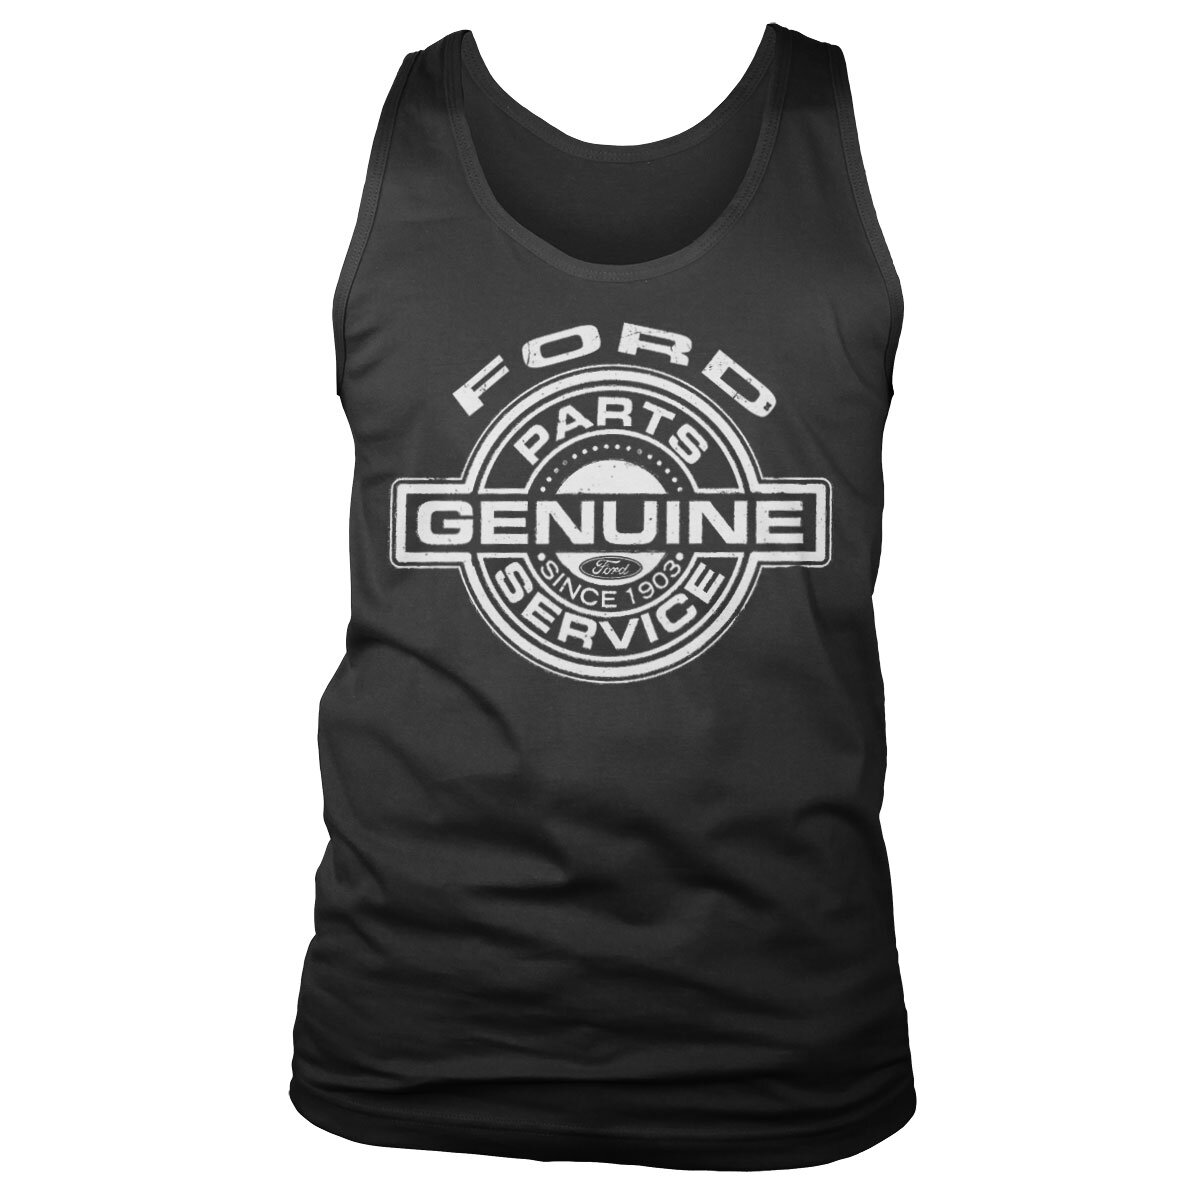 Ford - Genuine Parts And Service Tank Top